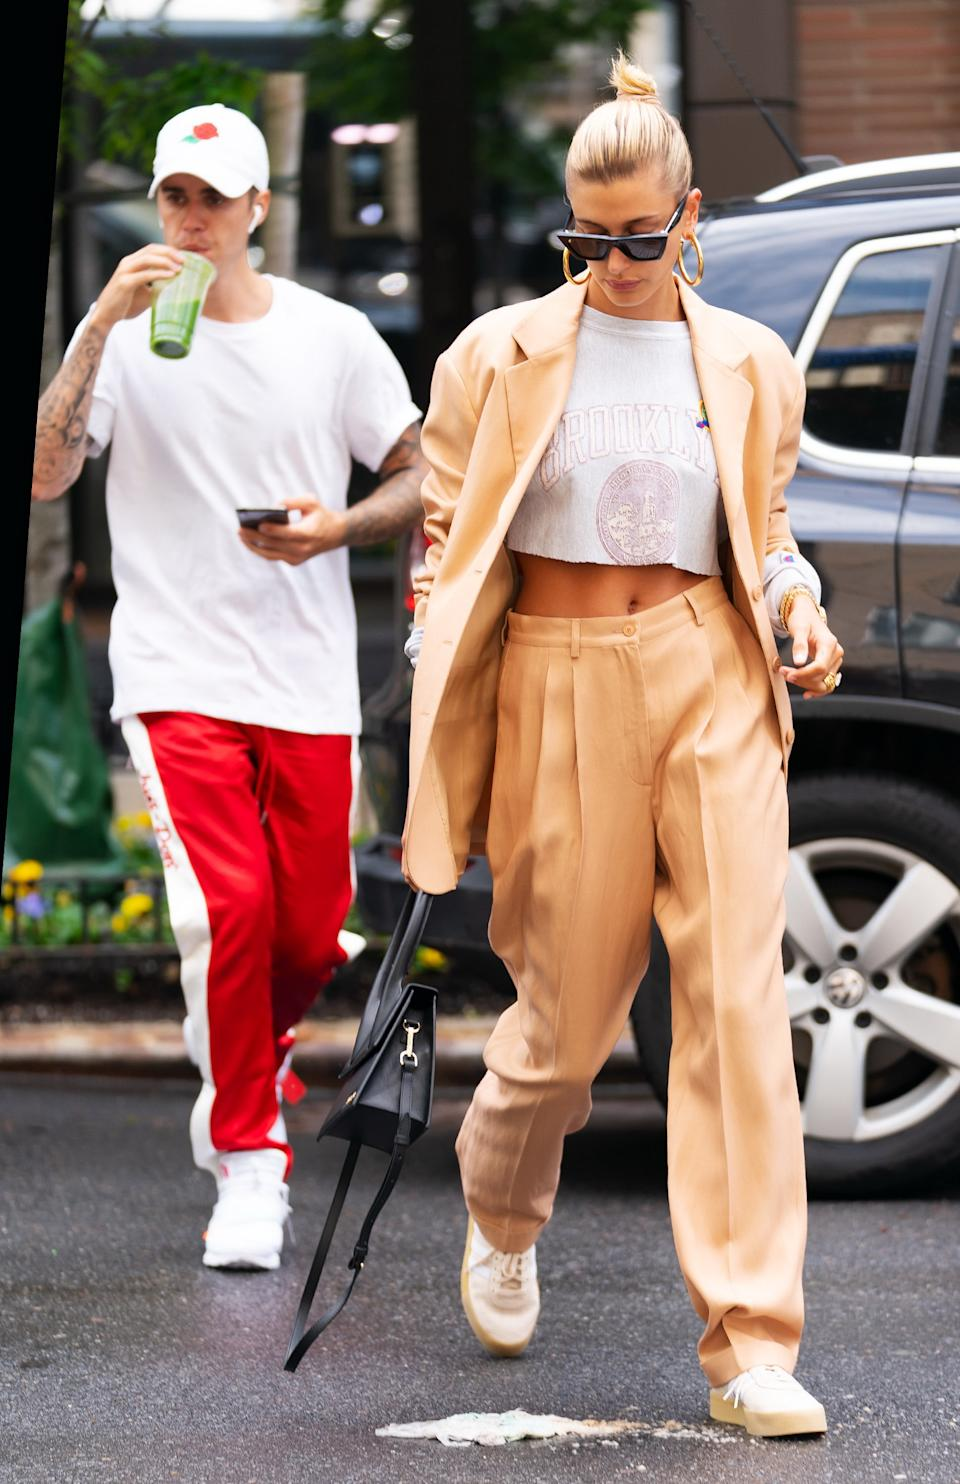 Justin Bieber sips on green juice when out and about with wife Hailey Bieber on 4 May 2019 in New York City. [Photo: Getty]